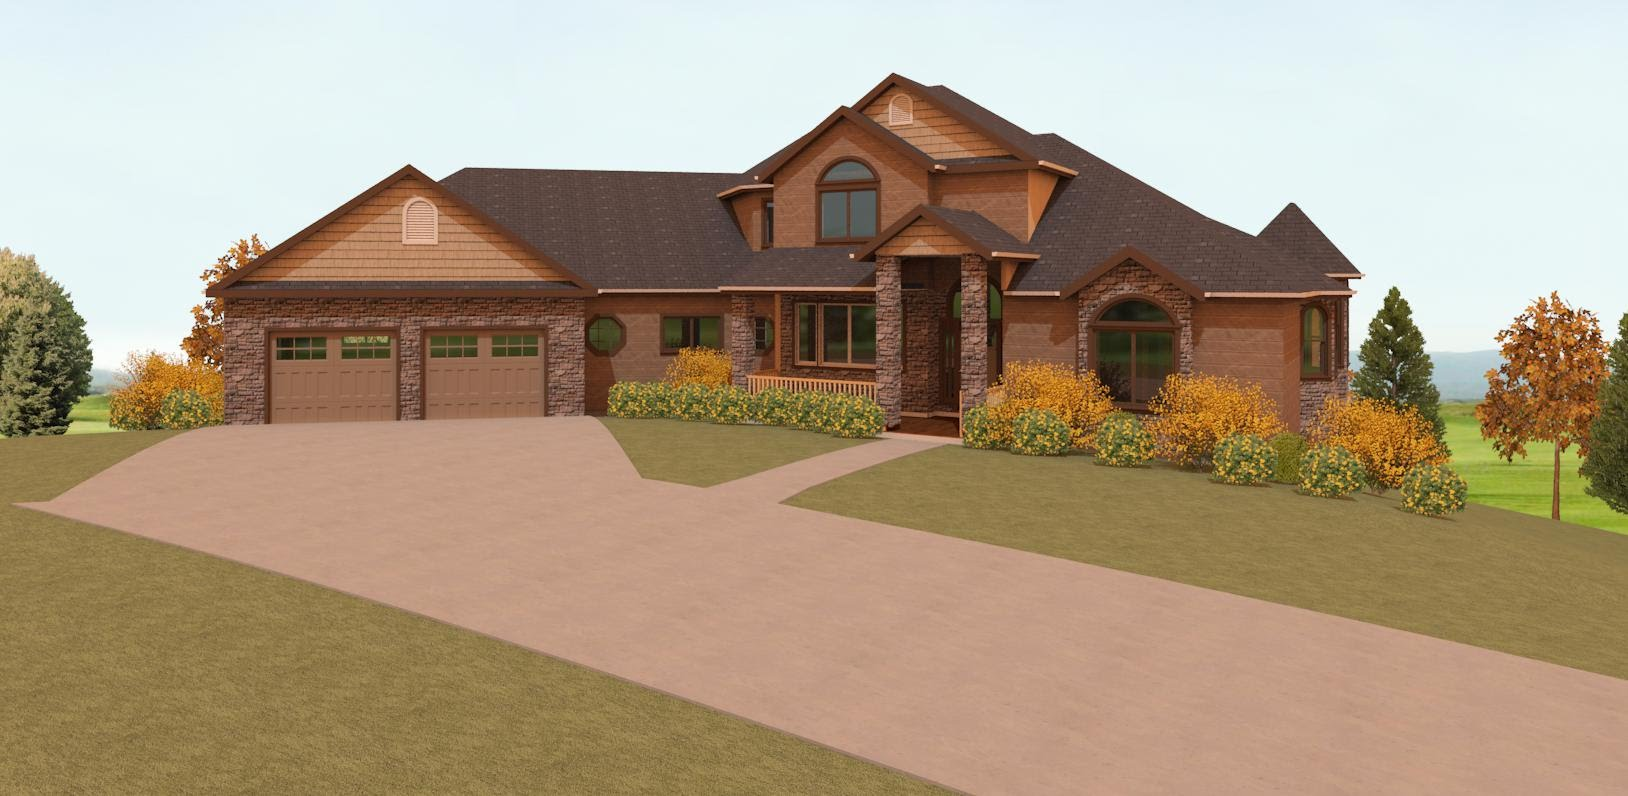 Custom Home Design Is Really Our Specialty! In The Past 20 Years We Have  Designed Close To 5000 Custom Homes Throughout The State Of Utah.